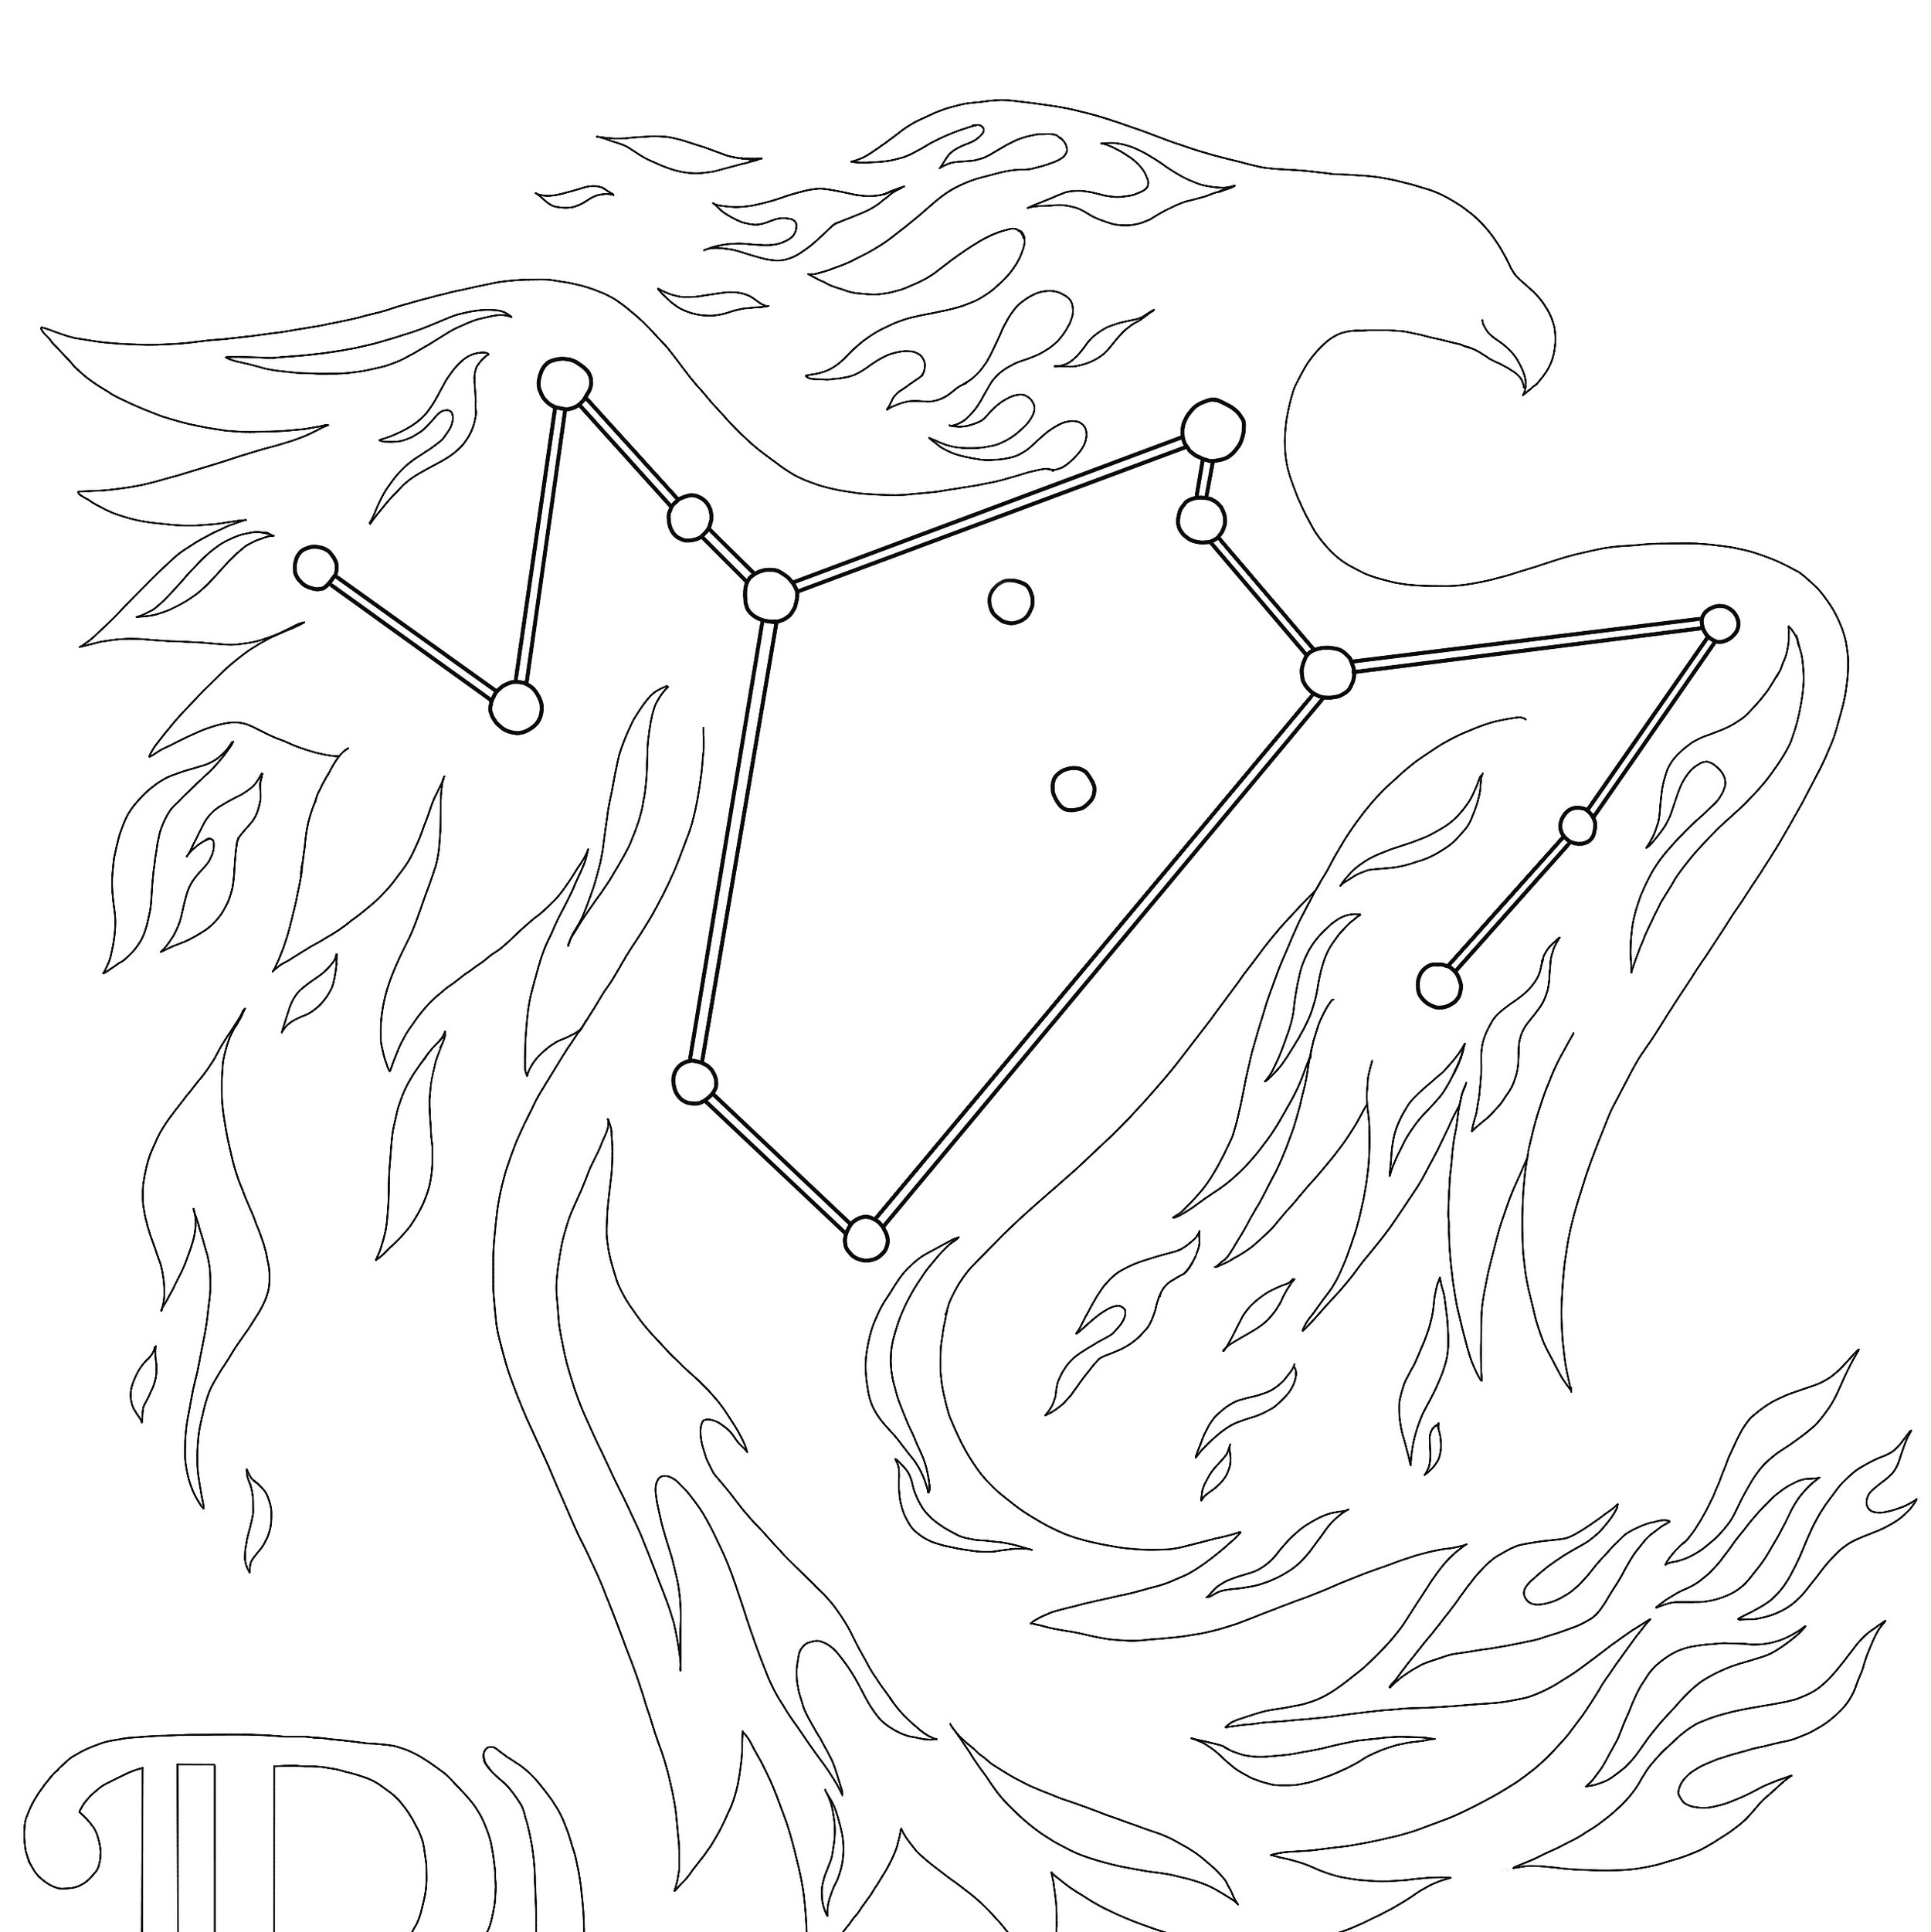 There are many mythical creatures in the sky around us. Three of them are featured in my Constellations coloring pages set.